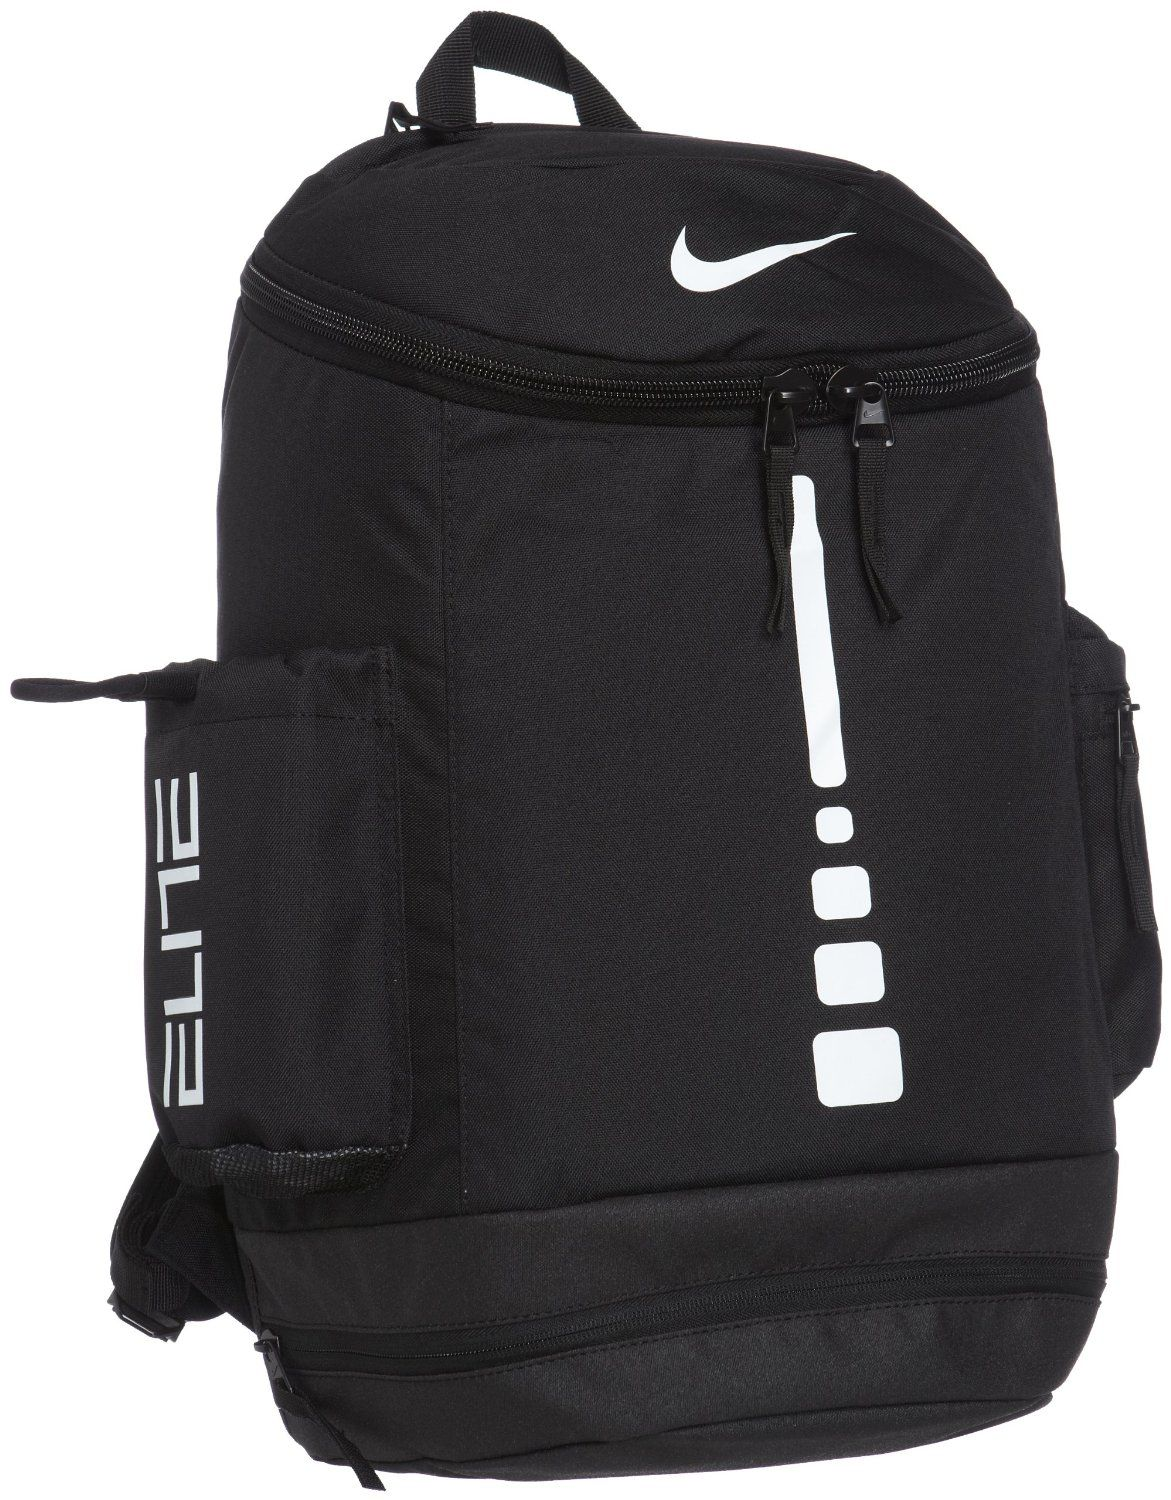 Amazon.com  Nike Male 30 Liters Backpack Bookbag in Black (BA4724-001)   Sports   Outdoors 586b8076eeb5d